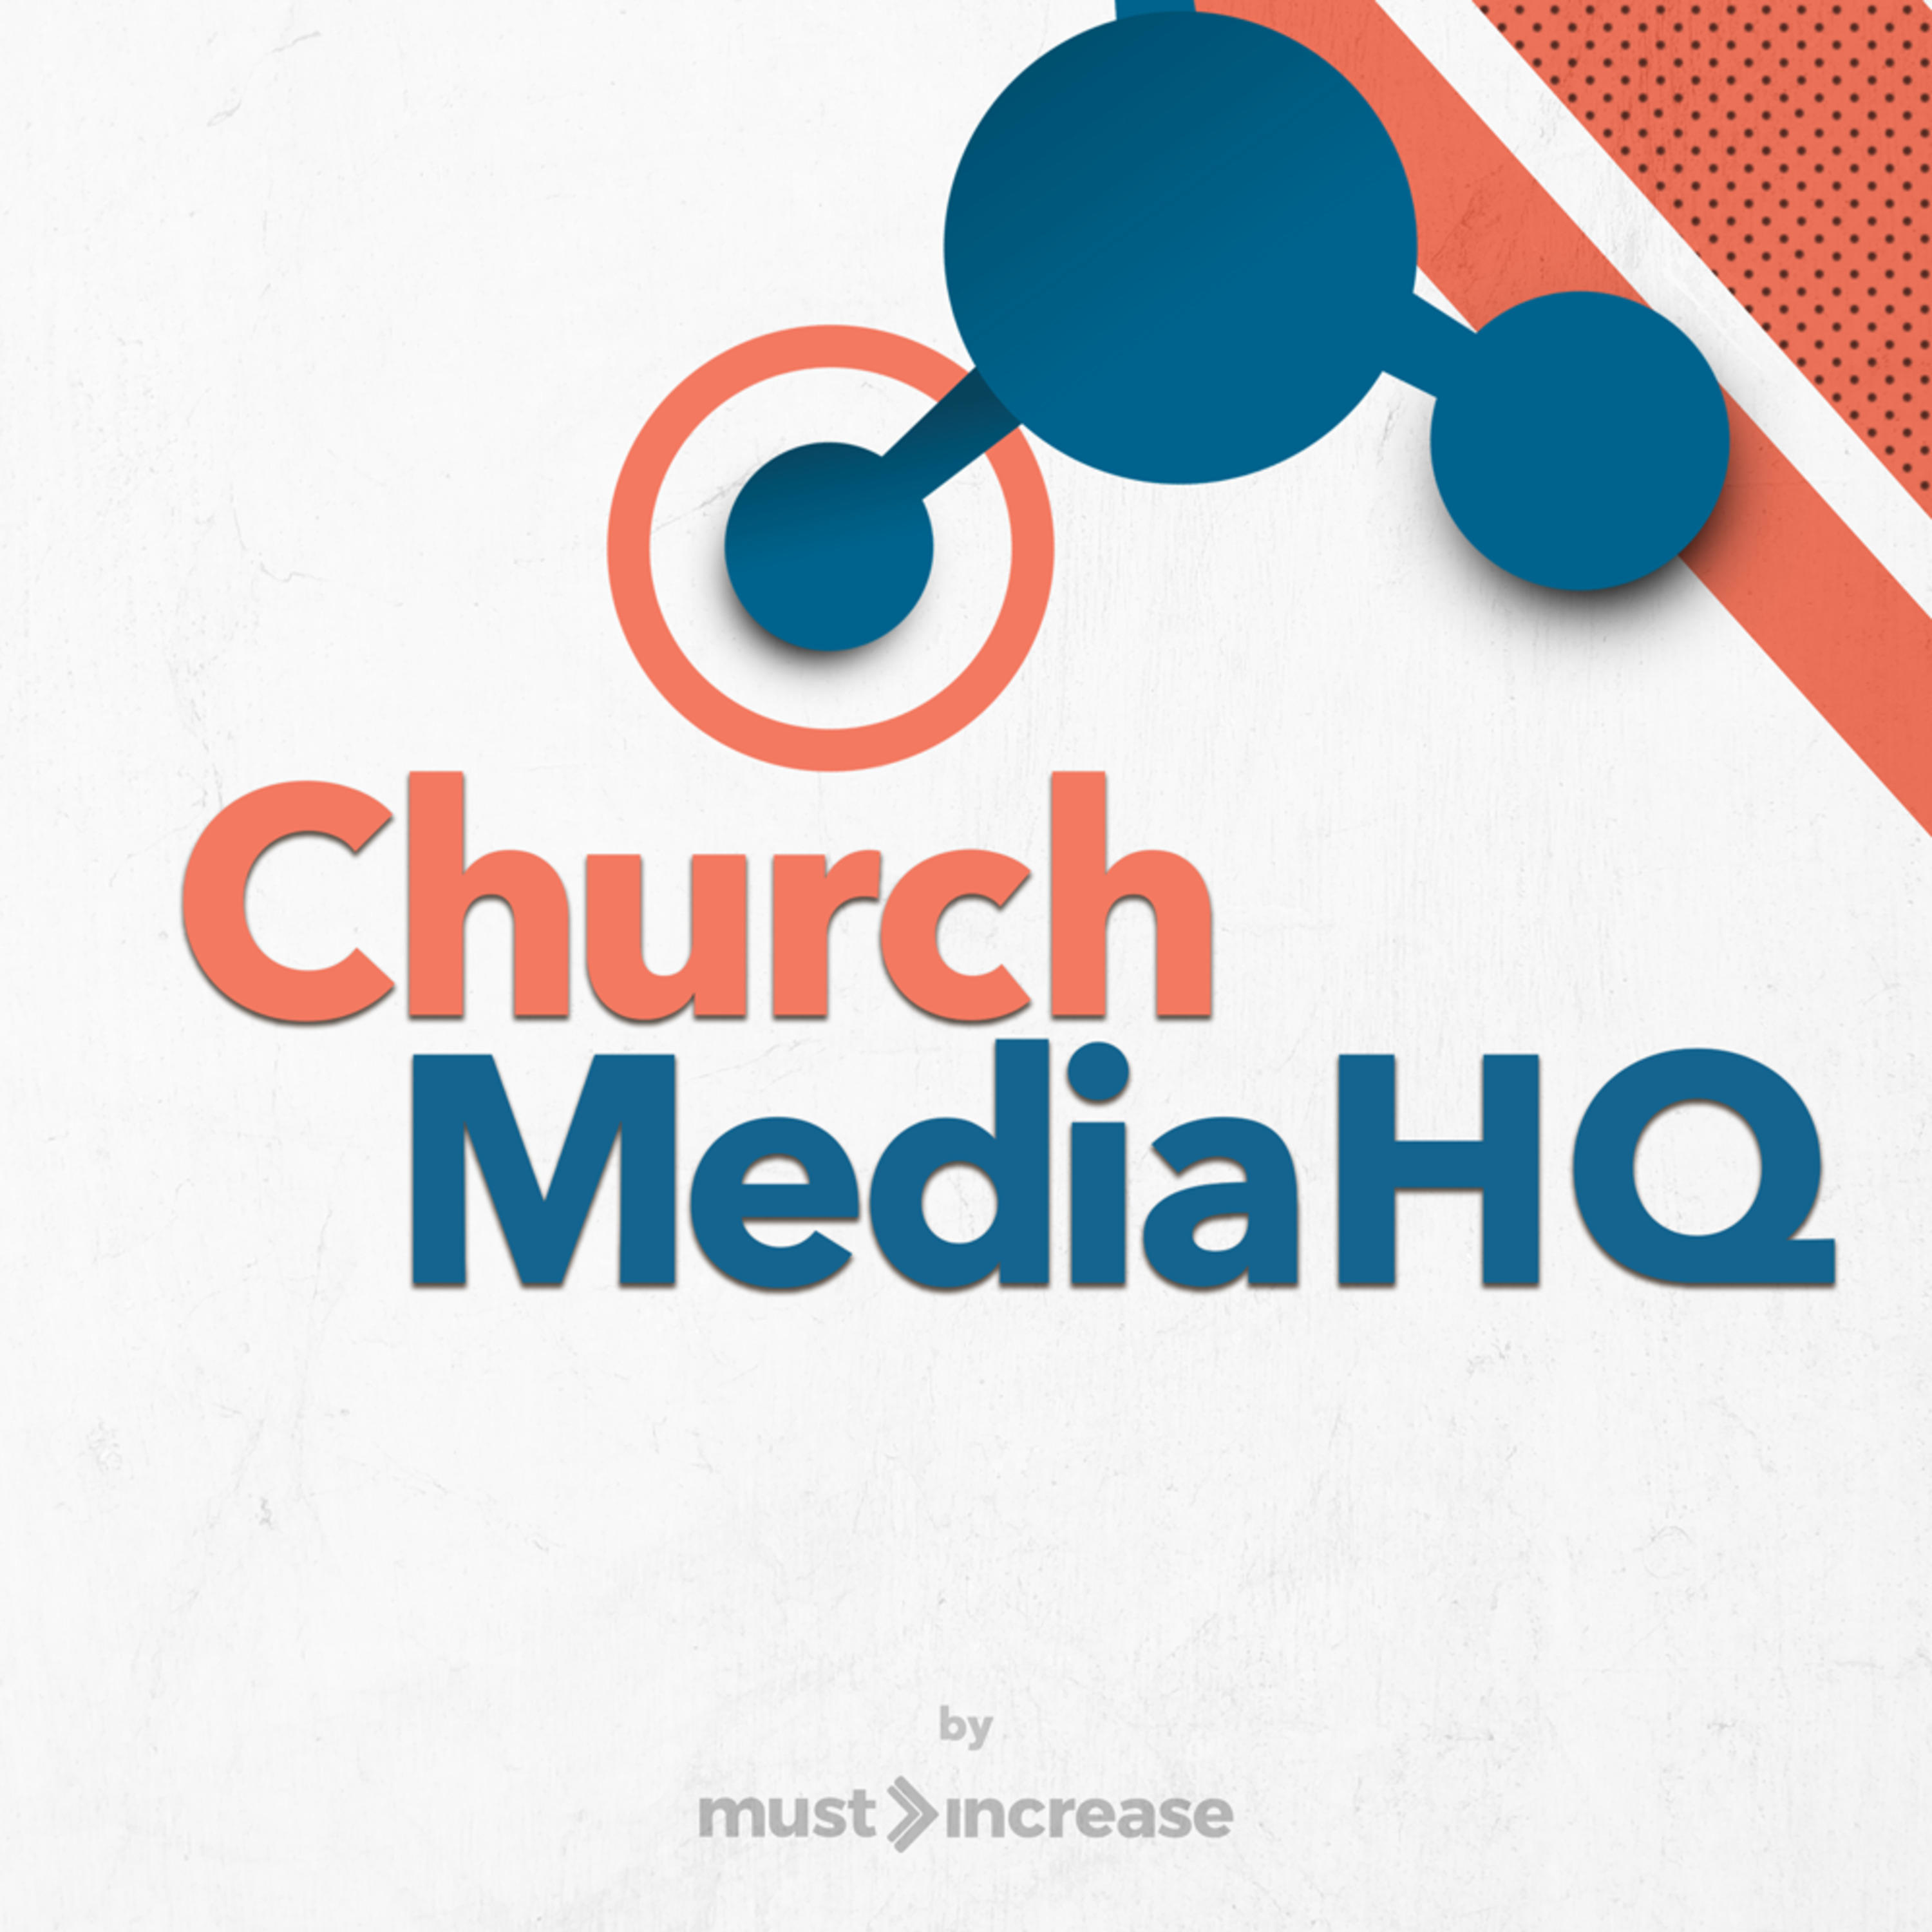 Church Online is the New Mission Field